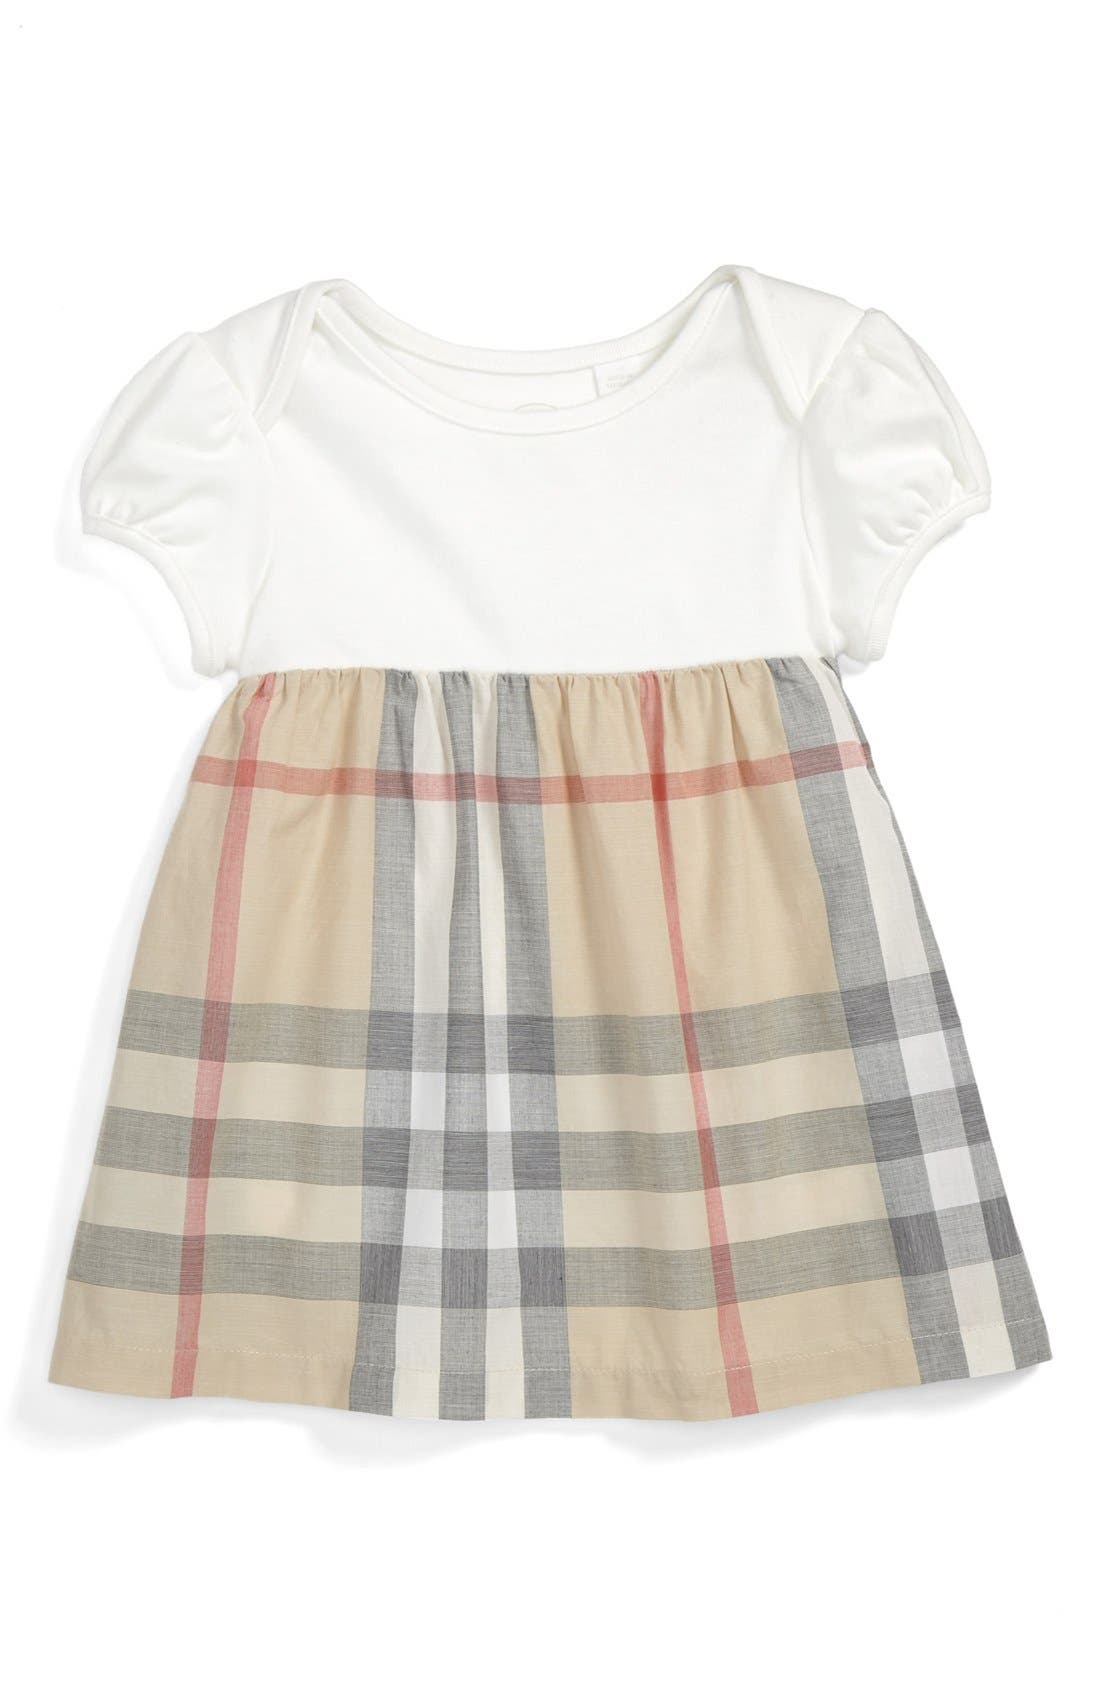 Main Image - Burberry 'Cherrylina' Knit & Woven Dress (Baby Girls)